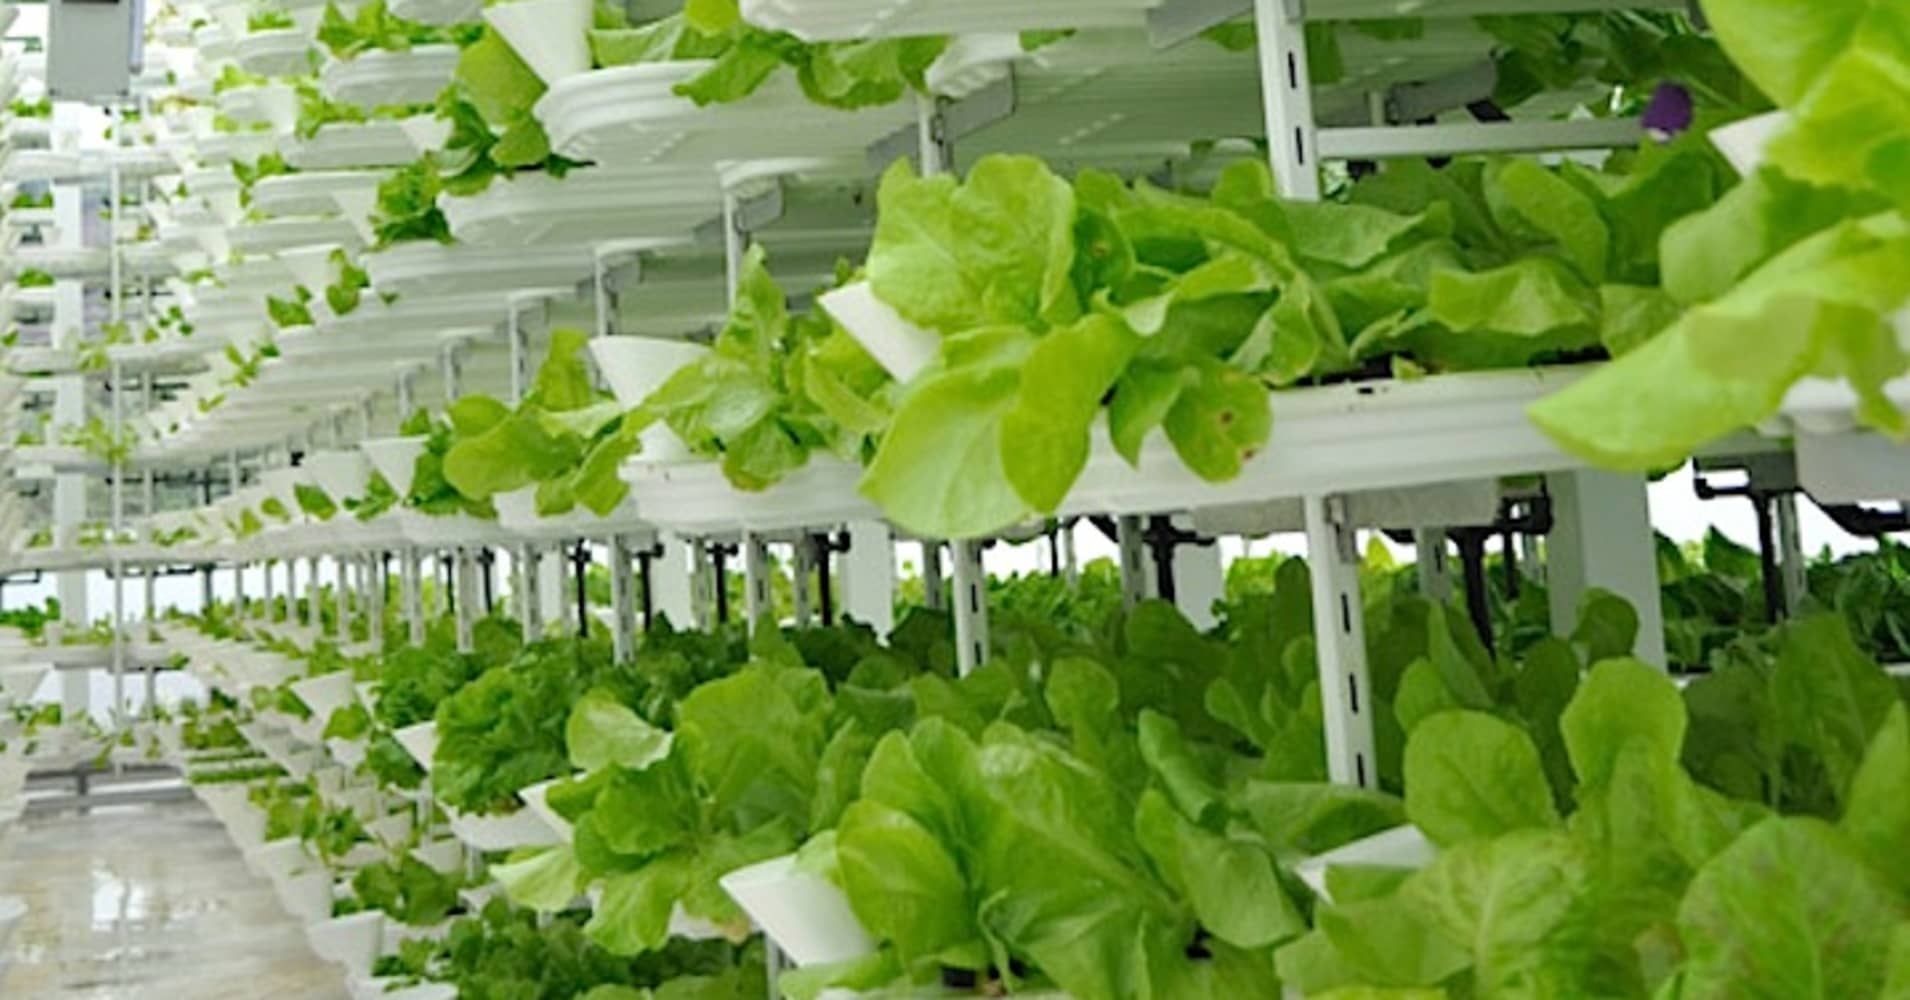 Vertical Farming A Hot New Area For Investors Commentary